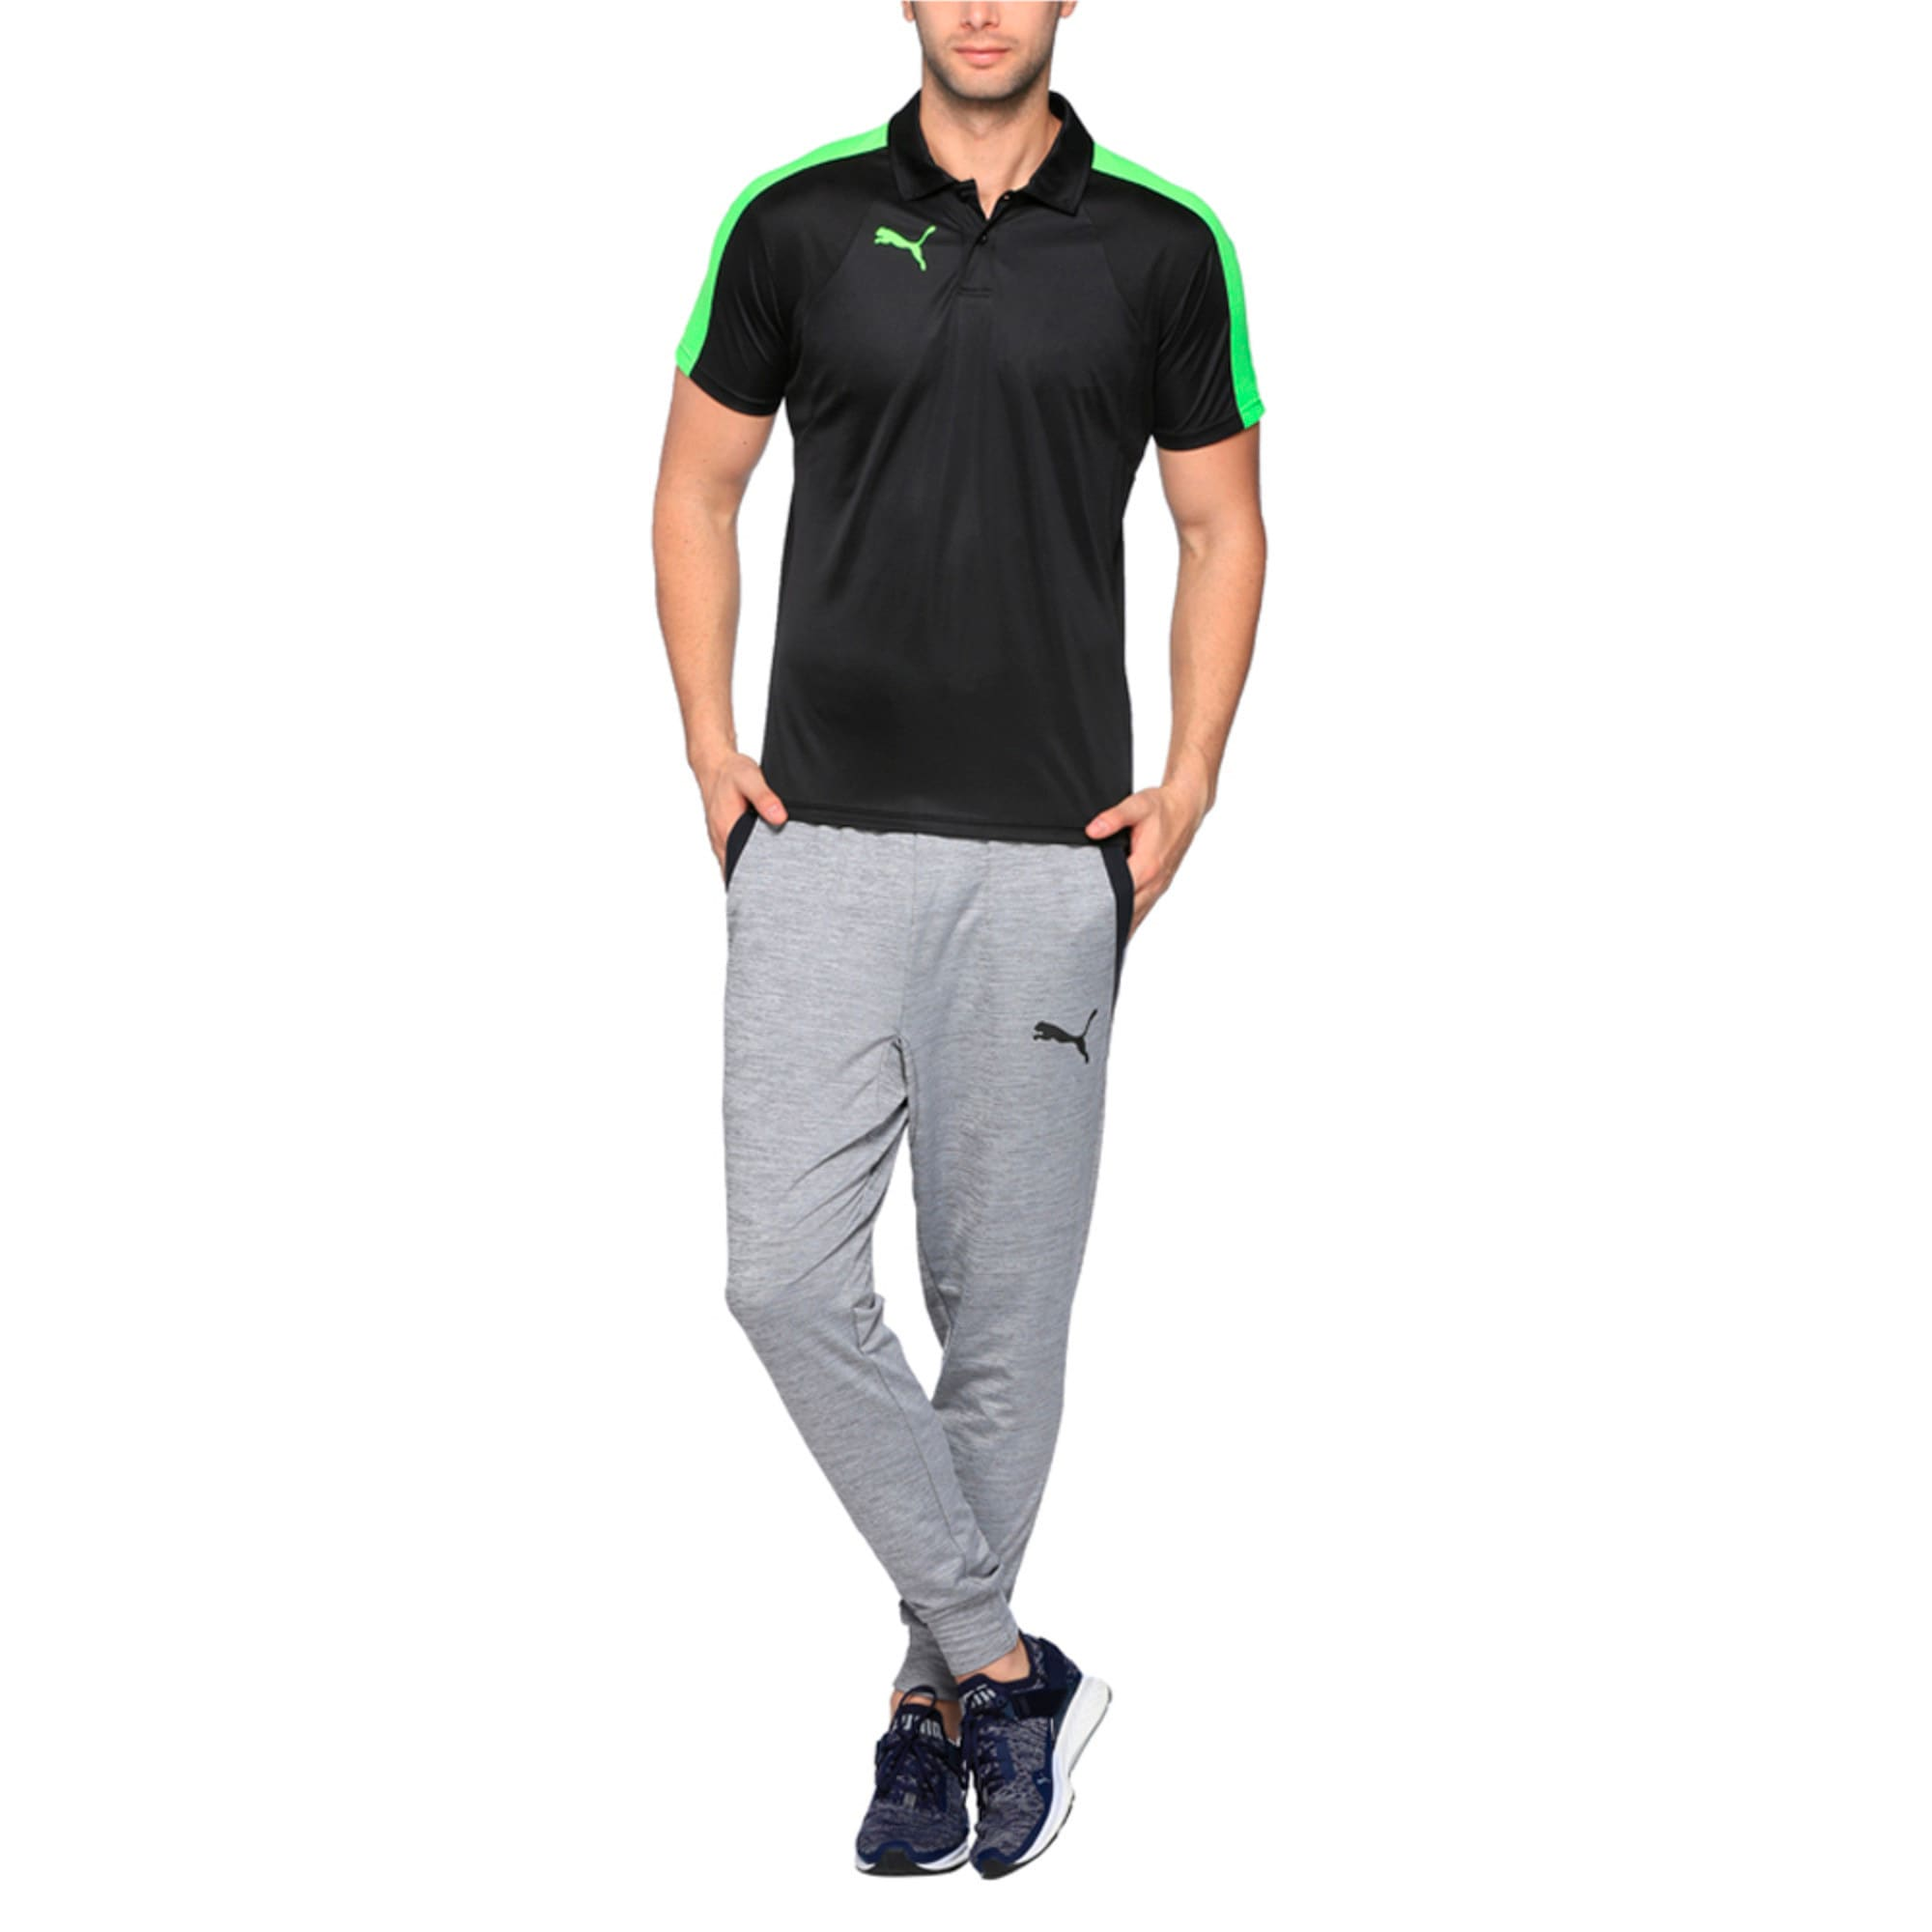 Thumbnail 3 of IT evoTRG Polo, Puma Black-Green Gecko, medium-IND